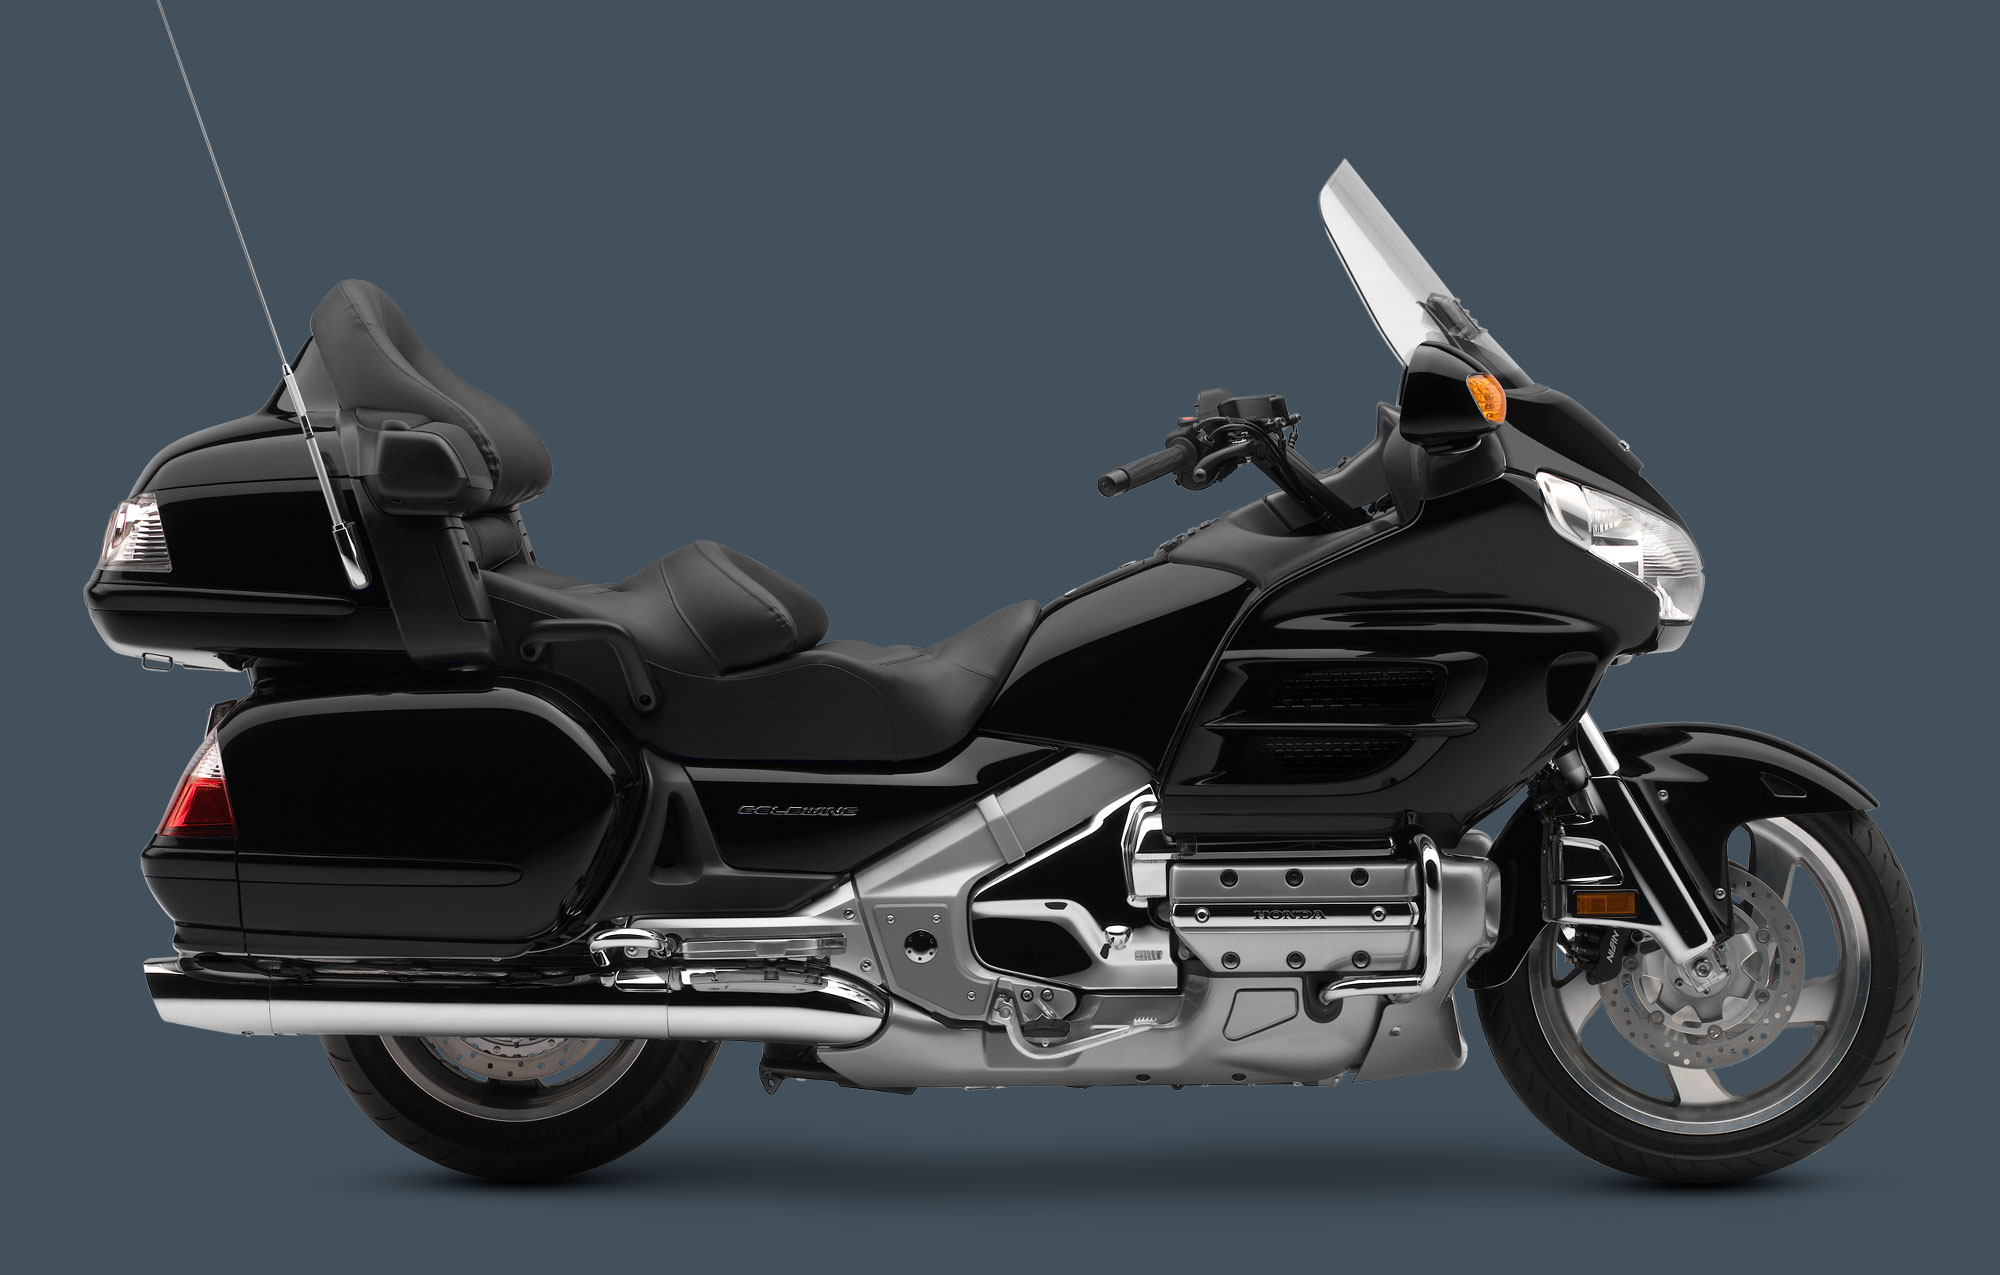 Honda GL 1800 Gold Wing 2013 images #83172